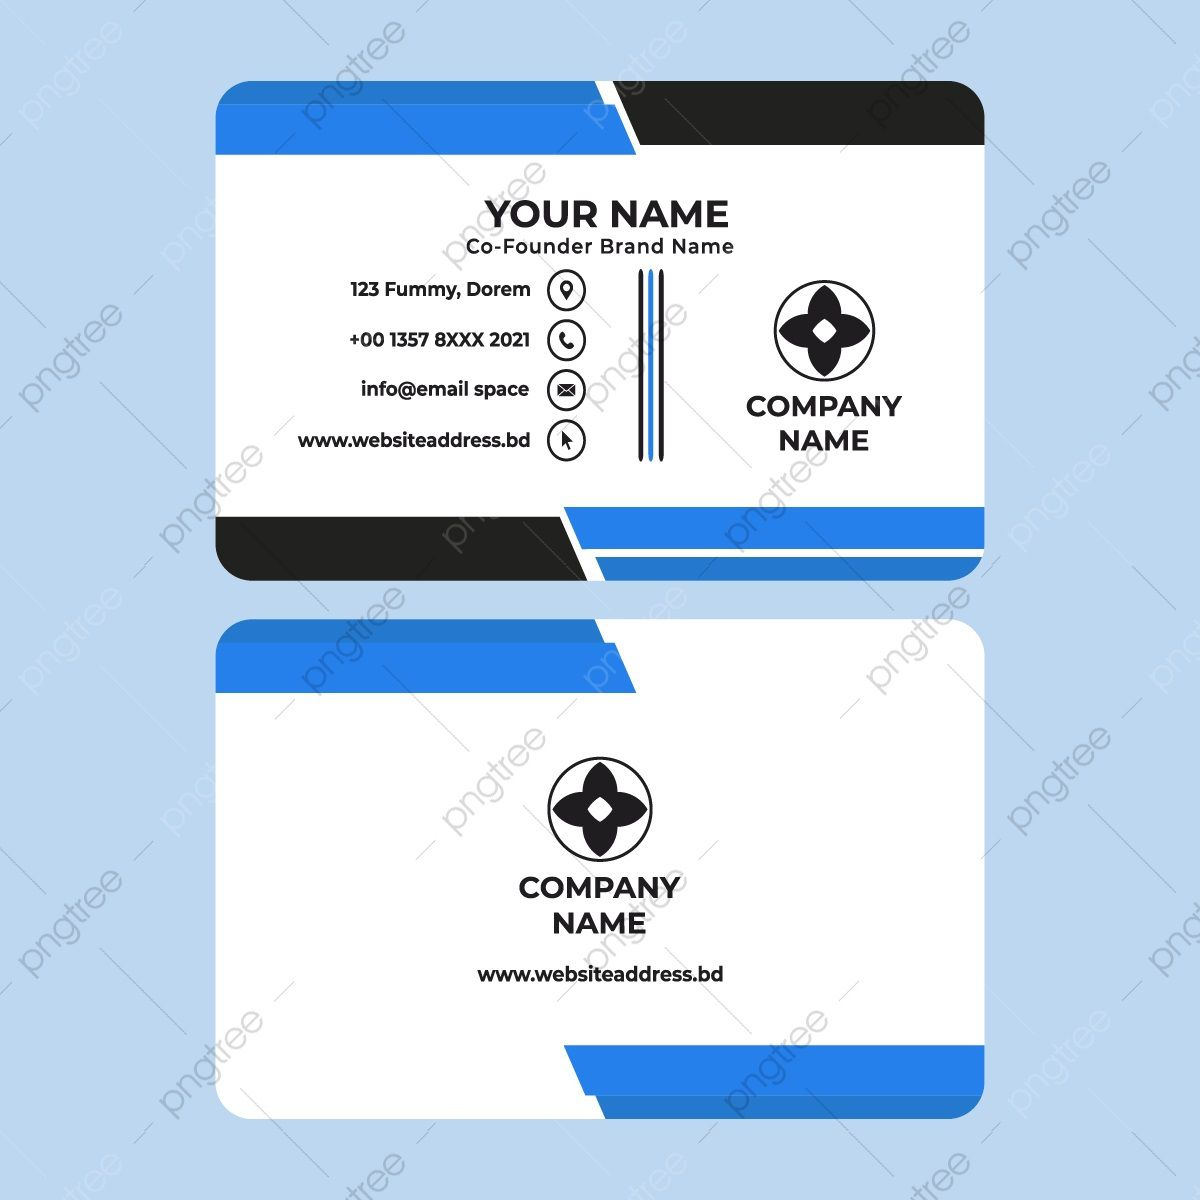 009 Fearsome Simple Visiting Card Template Highest Clarity  Templates Busines Psd Design File Free DownloadFull